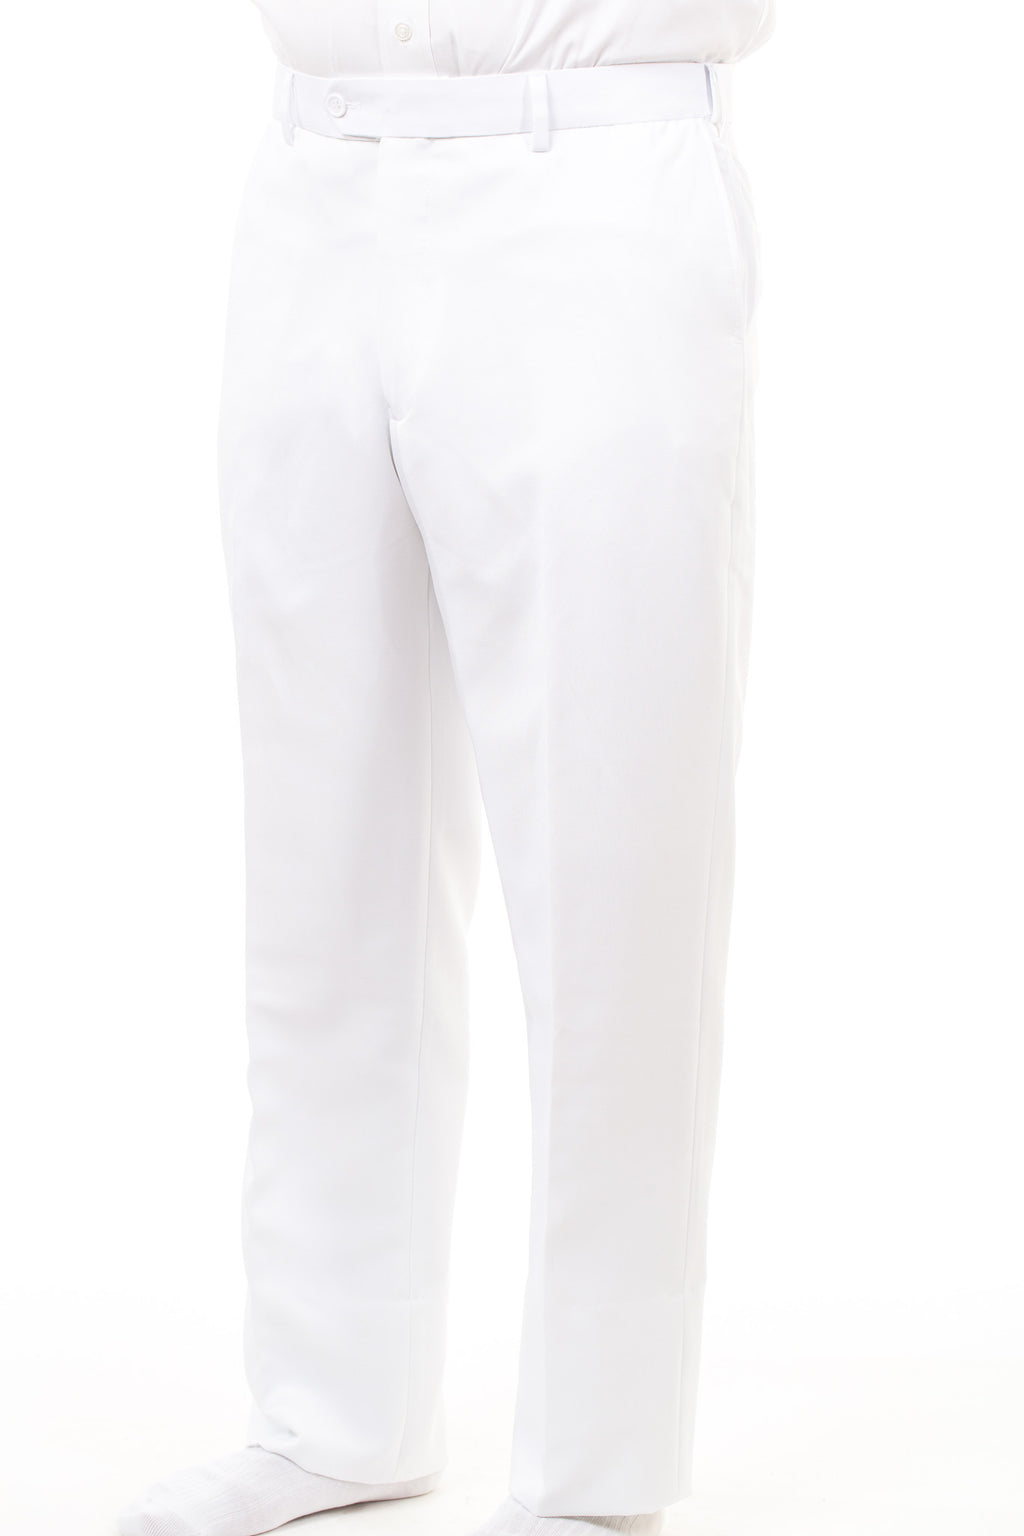 Temple Ready Dress Pant by CTR Clothing - Kater Shop